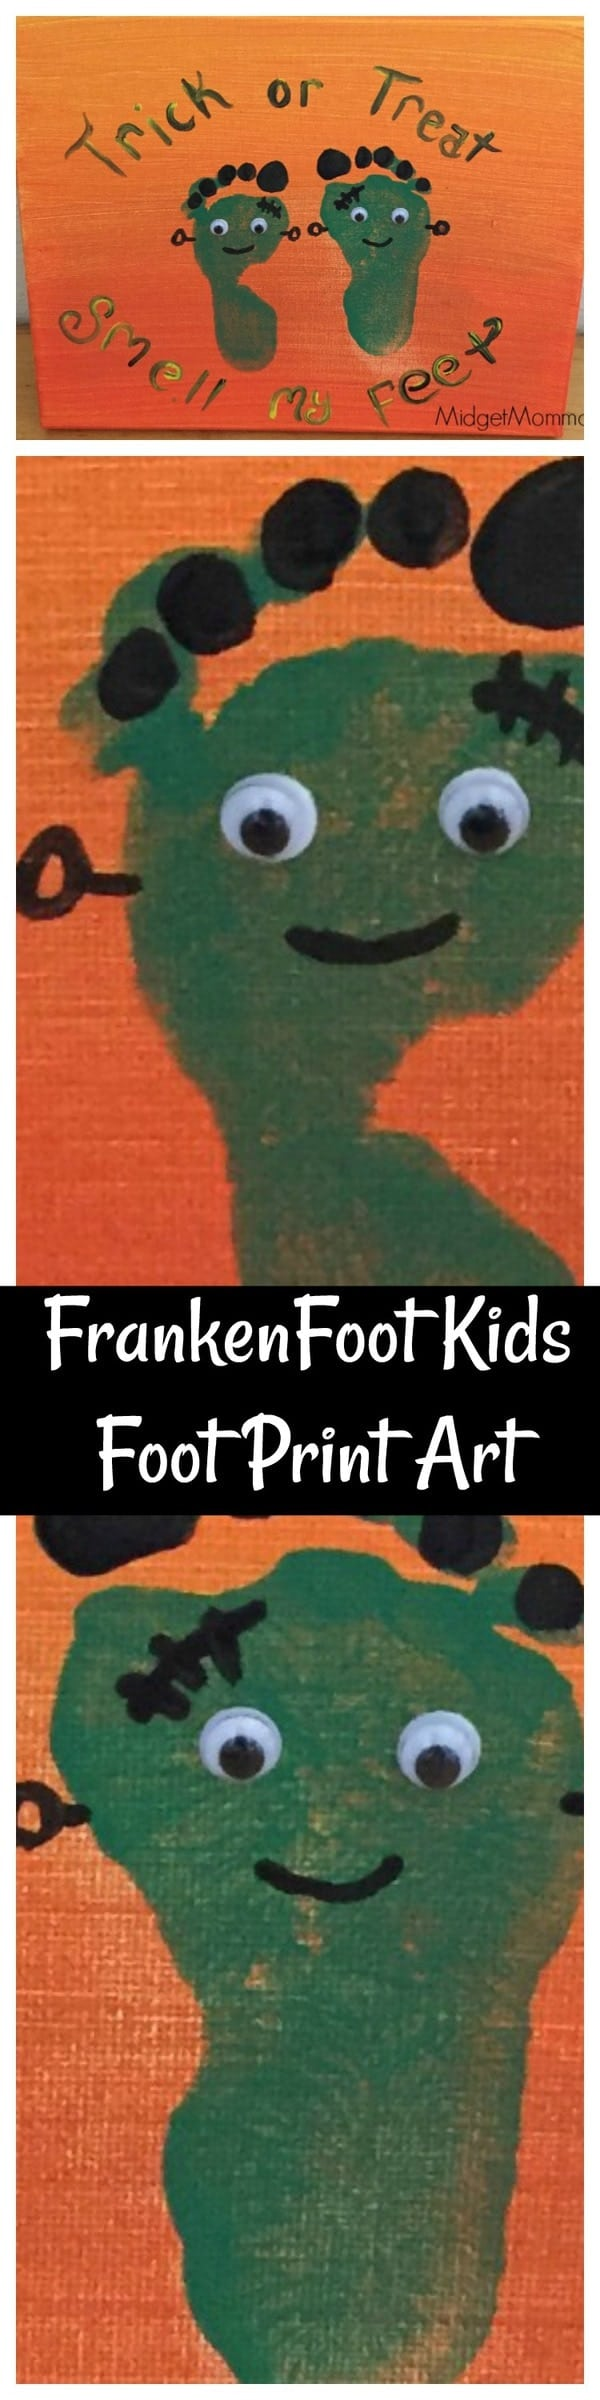 Frankenfoot Kids Foot Print Art Halloween Craft